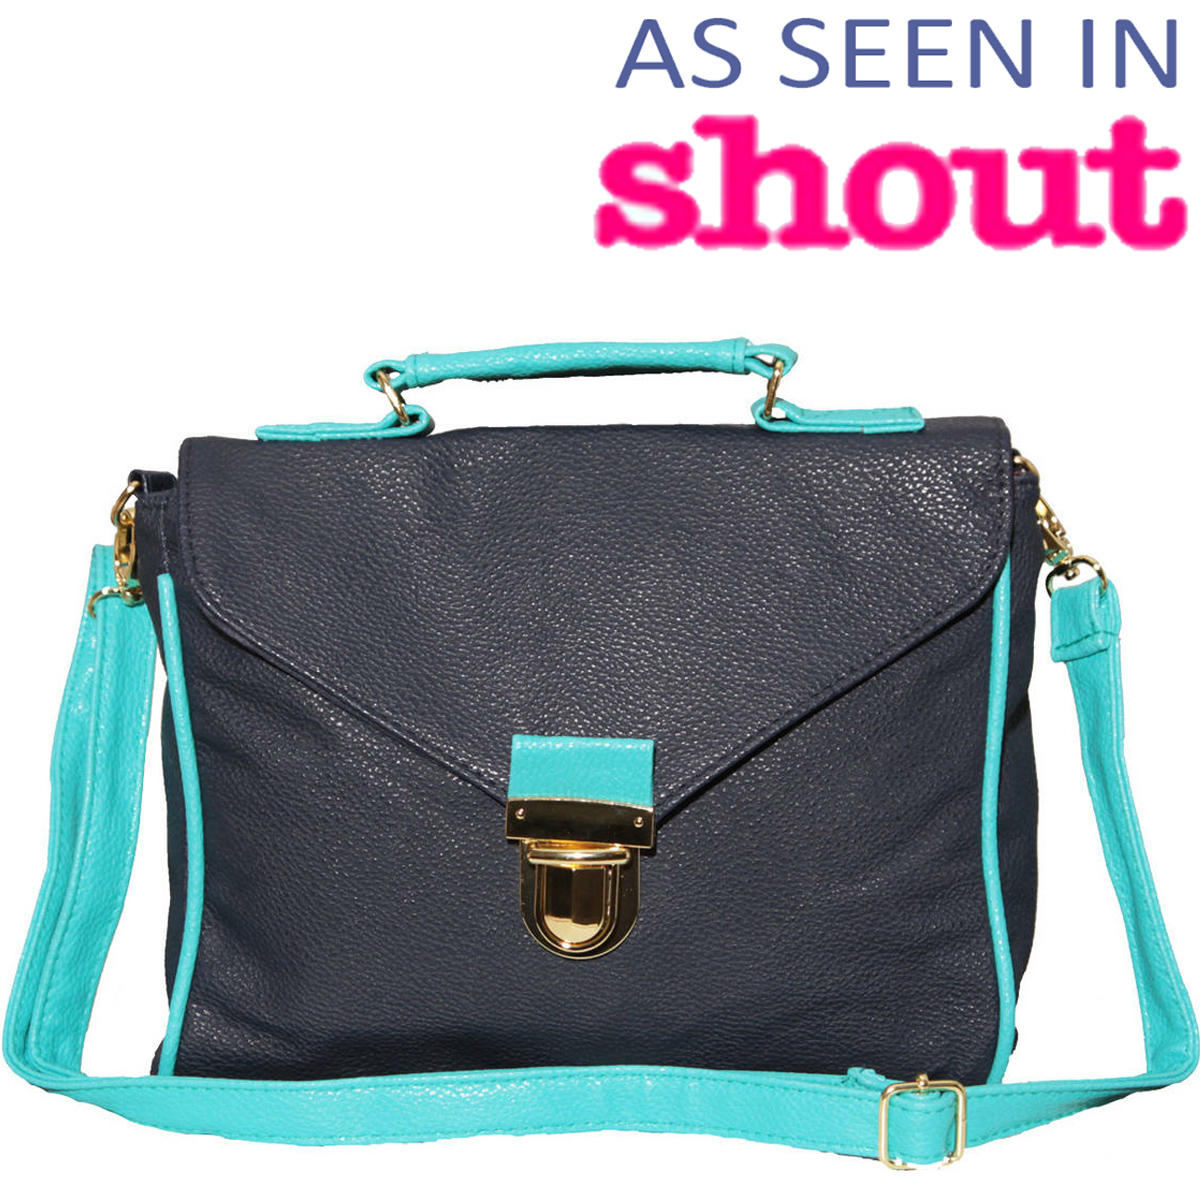 Blue Contrast Satchel Bag Preview